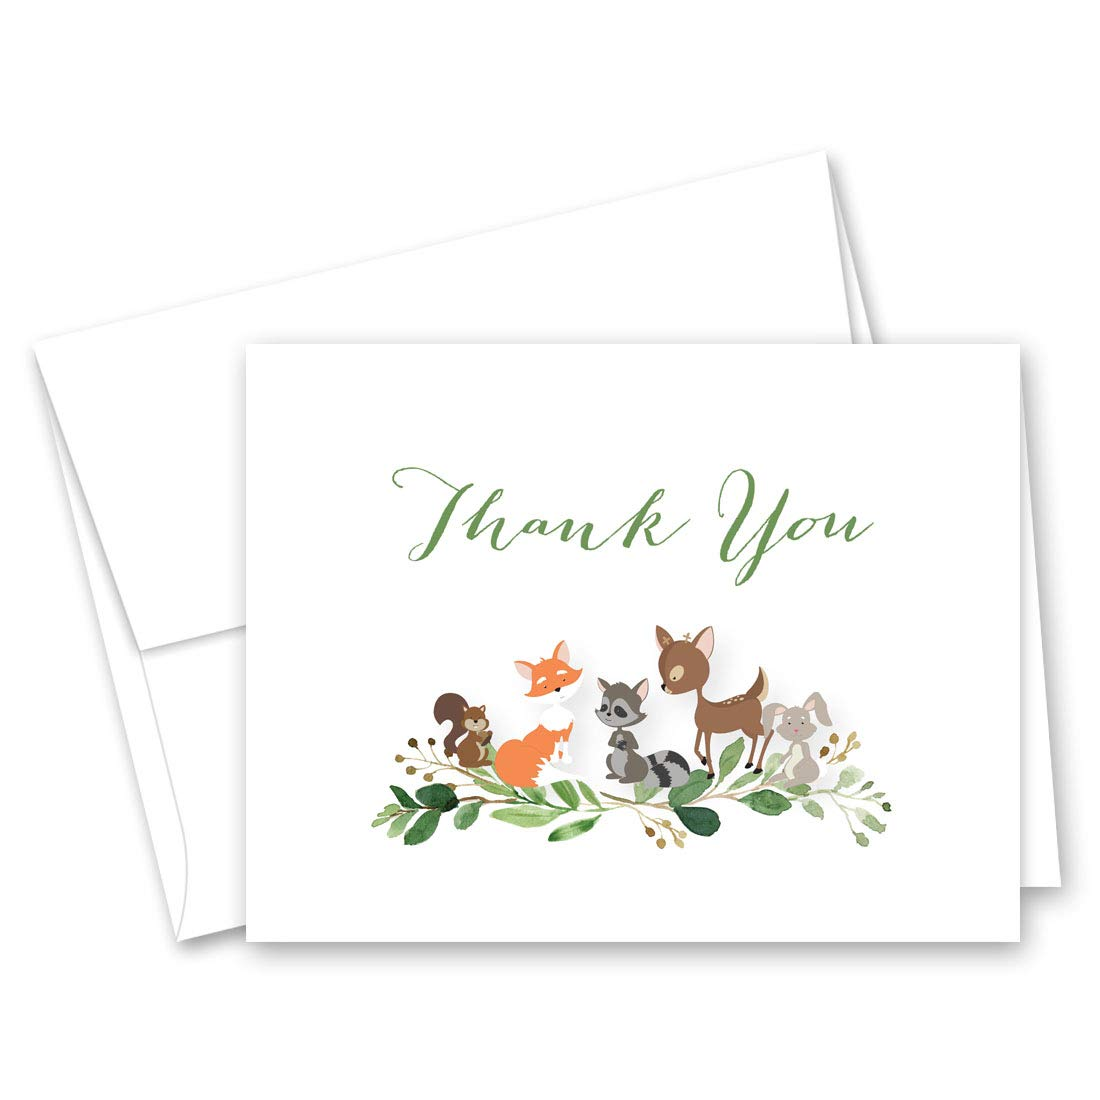 Forest Woodland Animals Baby Shower Thank You Cards - Set of 50 (Greenery) by InvitationHouse (Image #1)